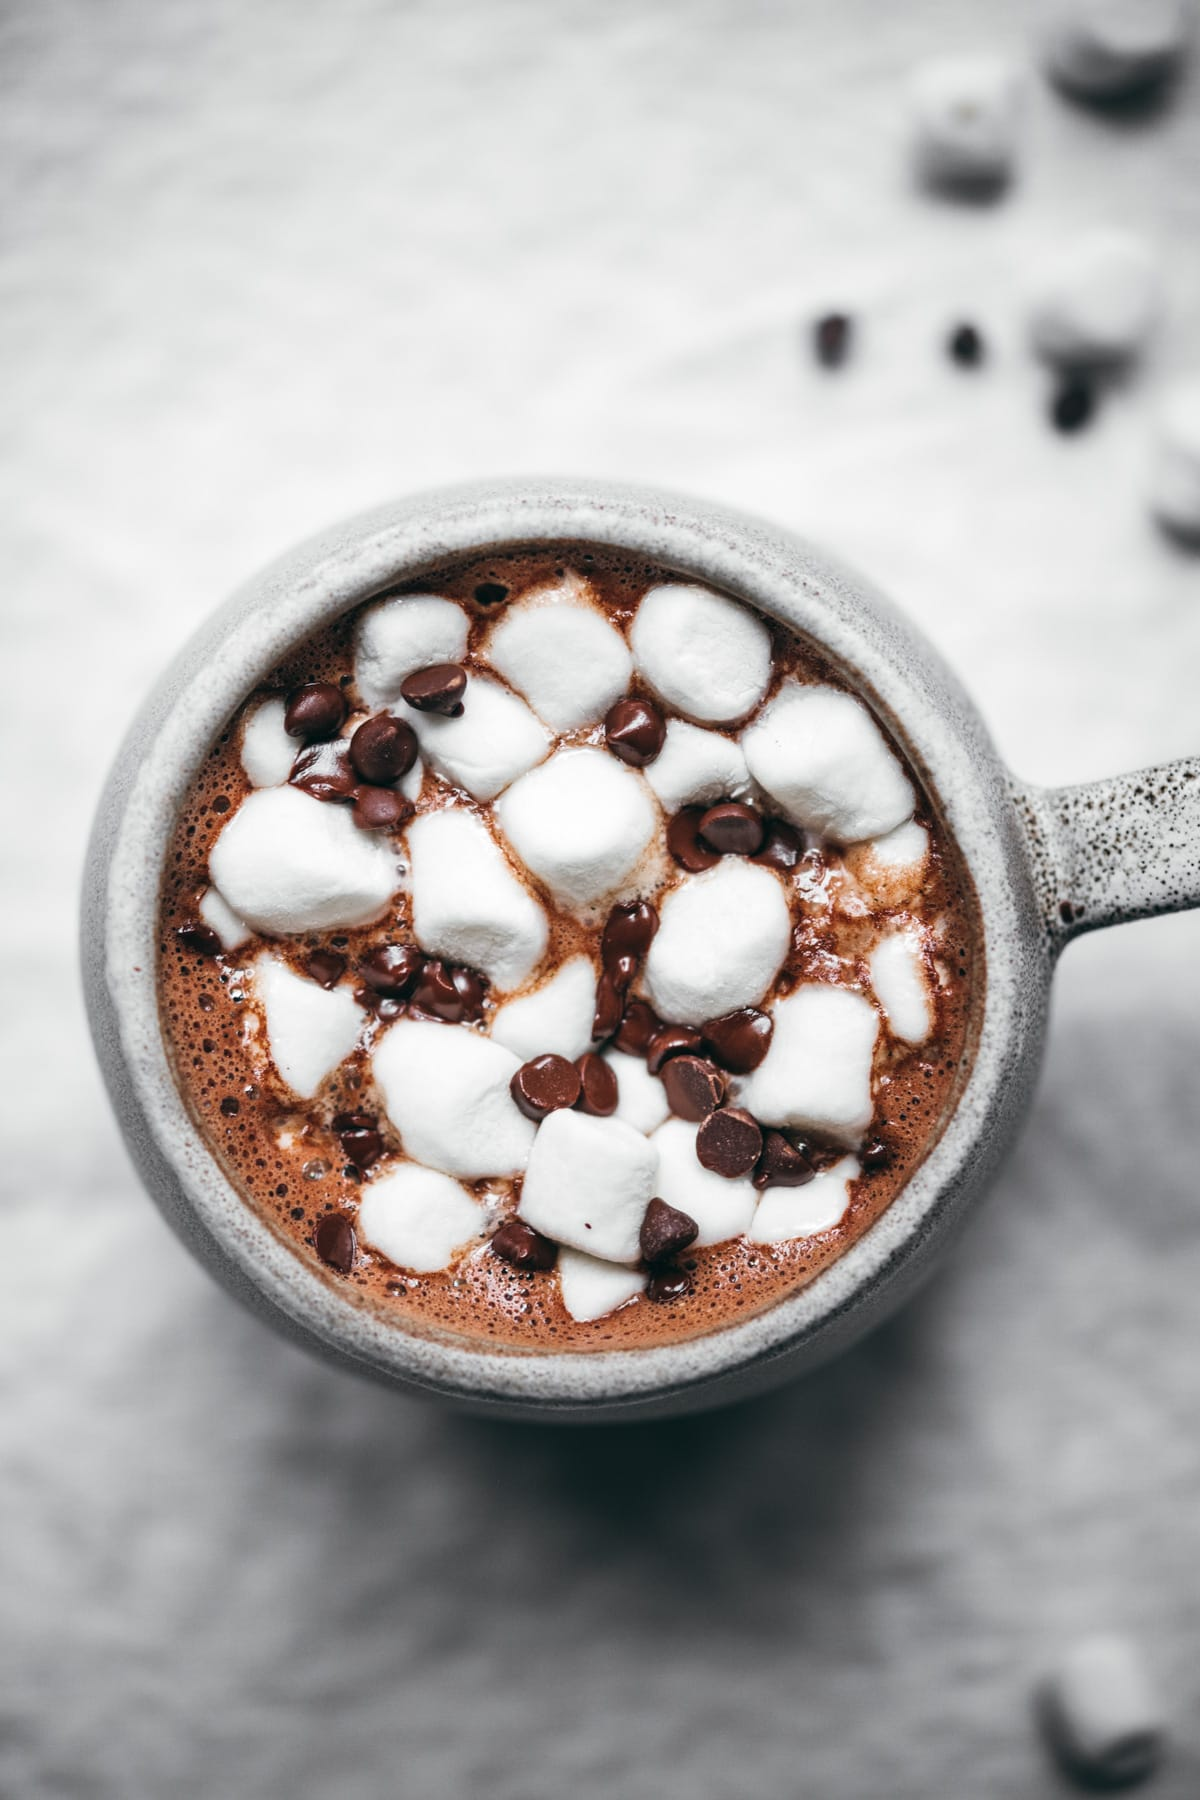 close up view of vegan hot chocolate with mini marshmallows and chocolate chips.